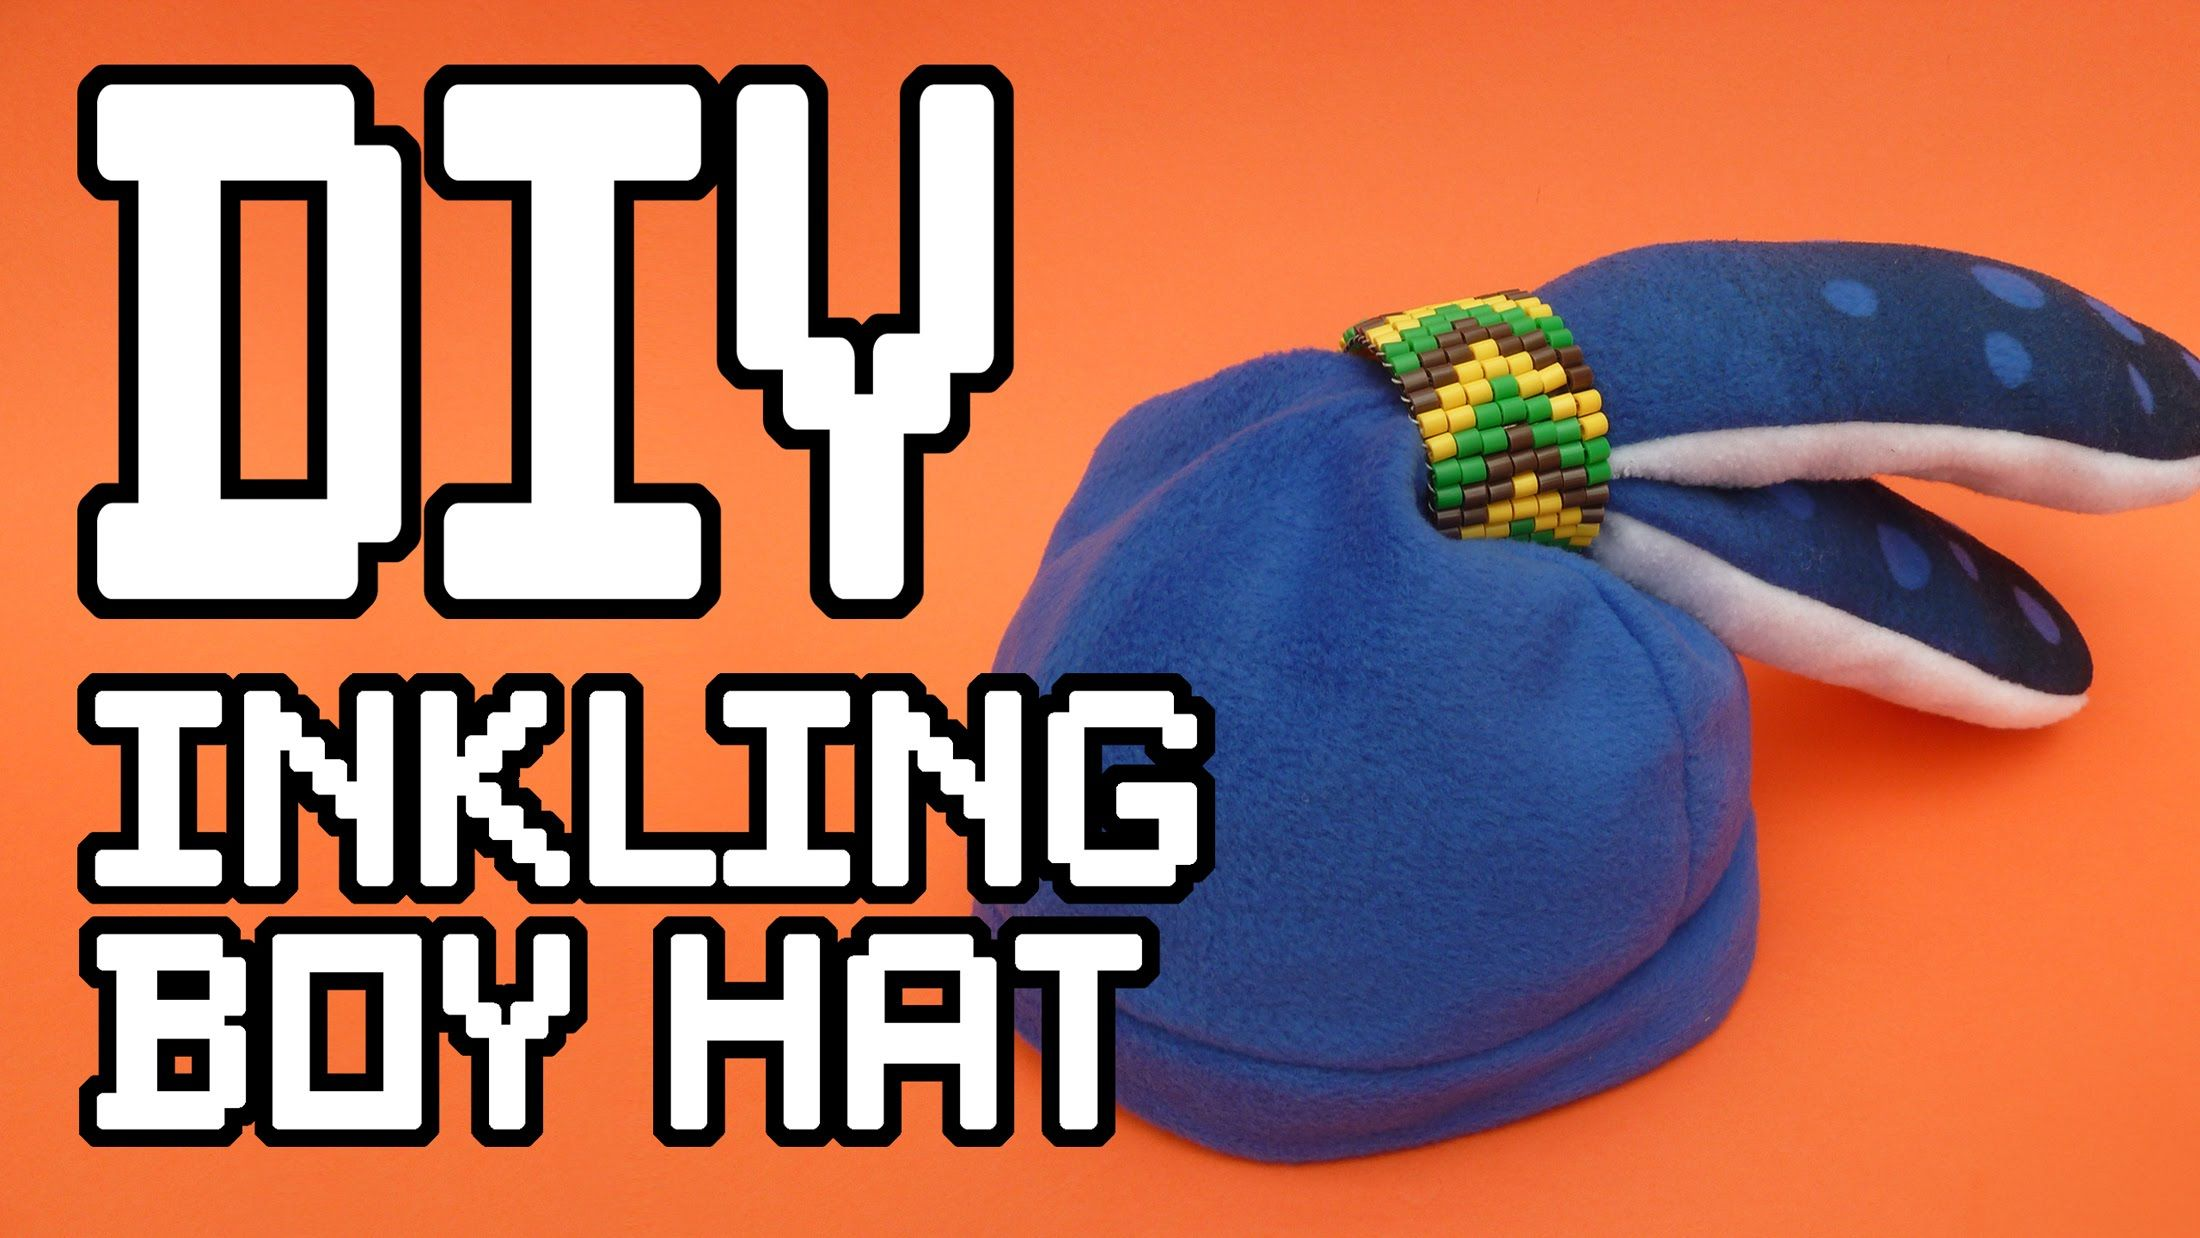 9a9577866d720 Splatoon Inkling Boy Hat templates - Find the Tutorial here  www.youtube.com